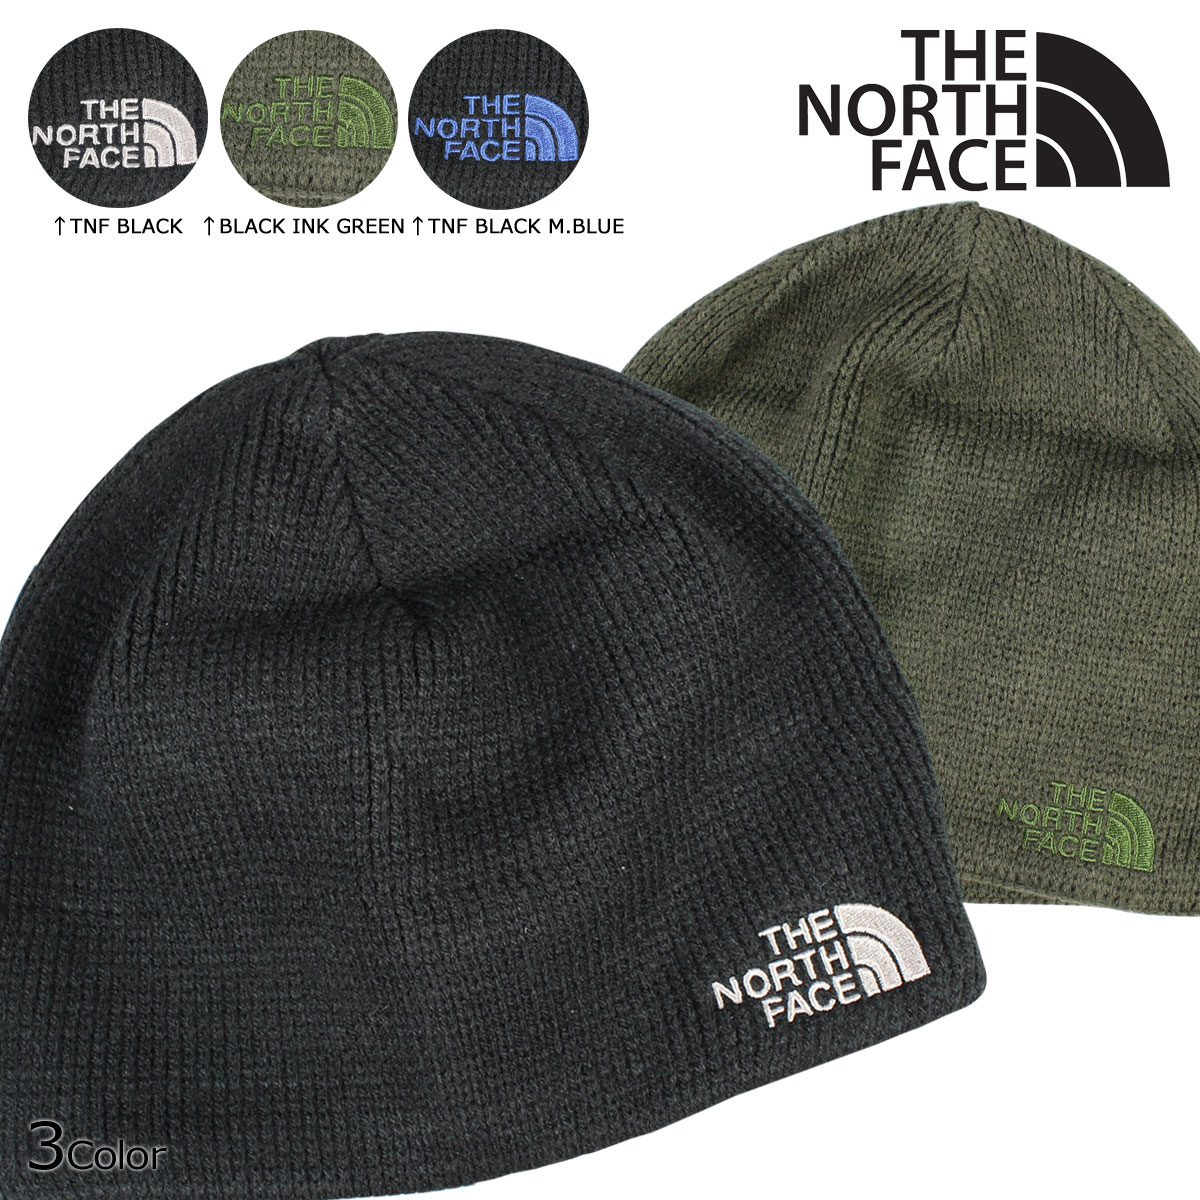 Whats up Sports   SOLD OUT  North Face THE NORTH FACE knit hat beanie knit  cap AHHZ 3 color BONES BEANIE men gap Dis  2e6806492b9